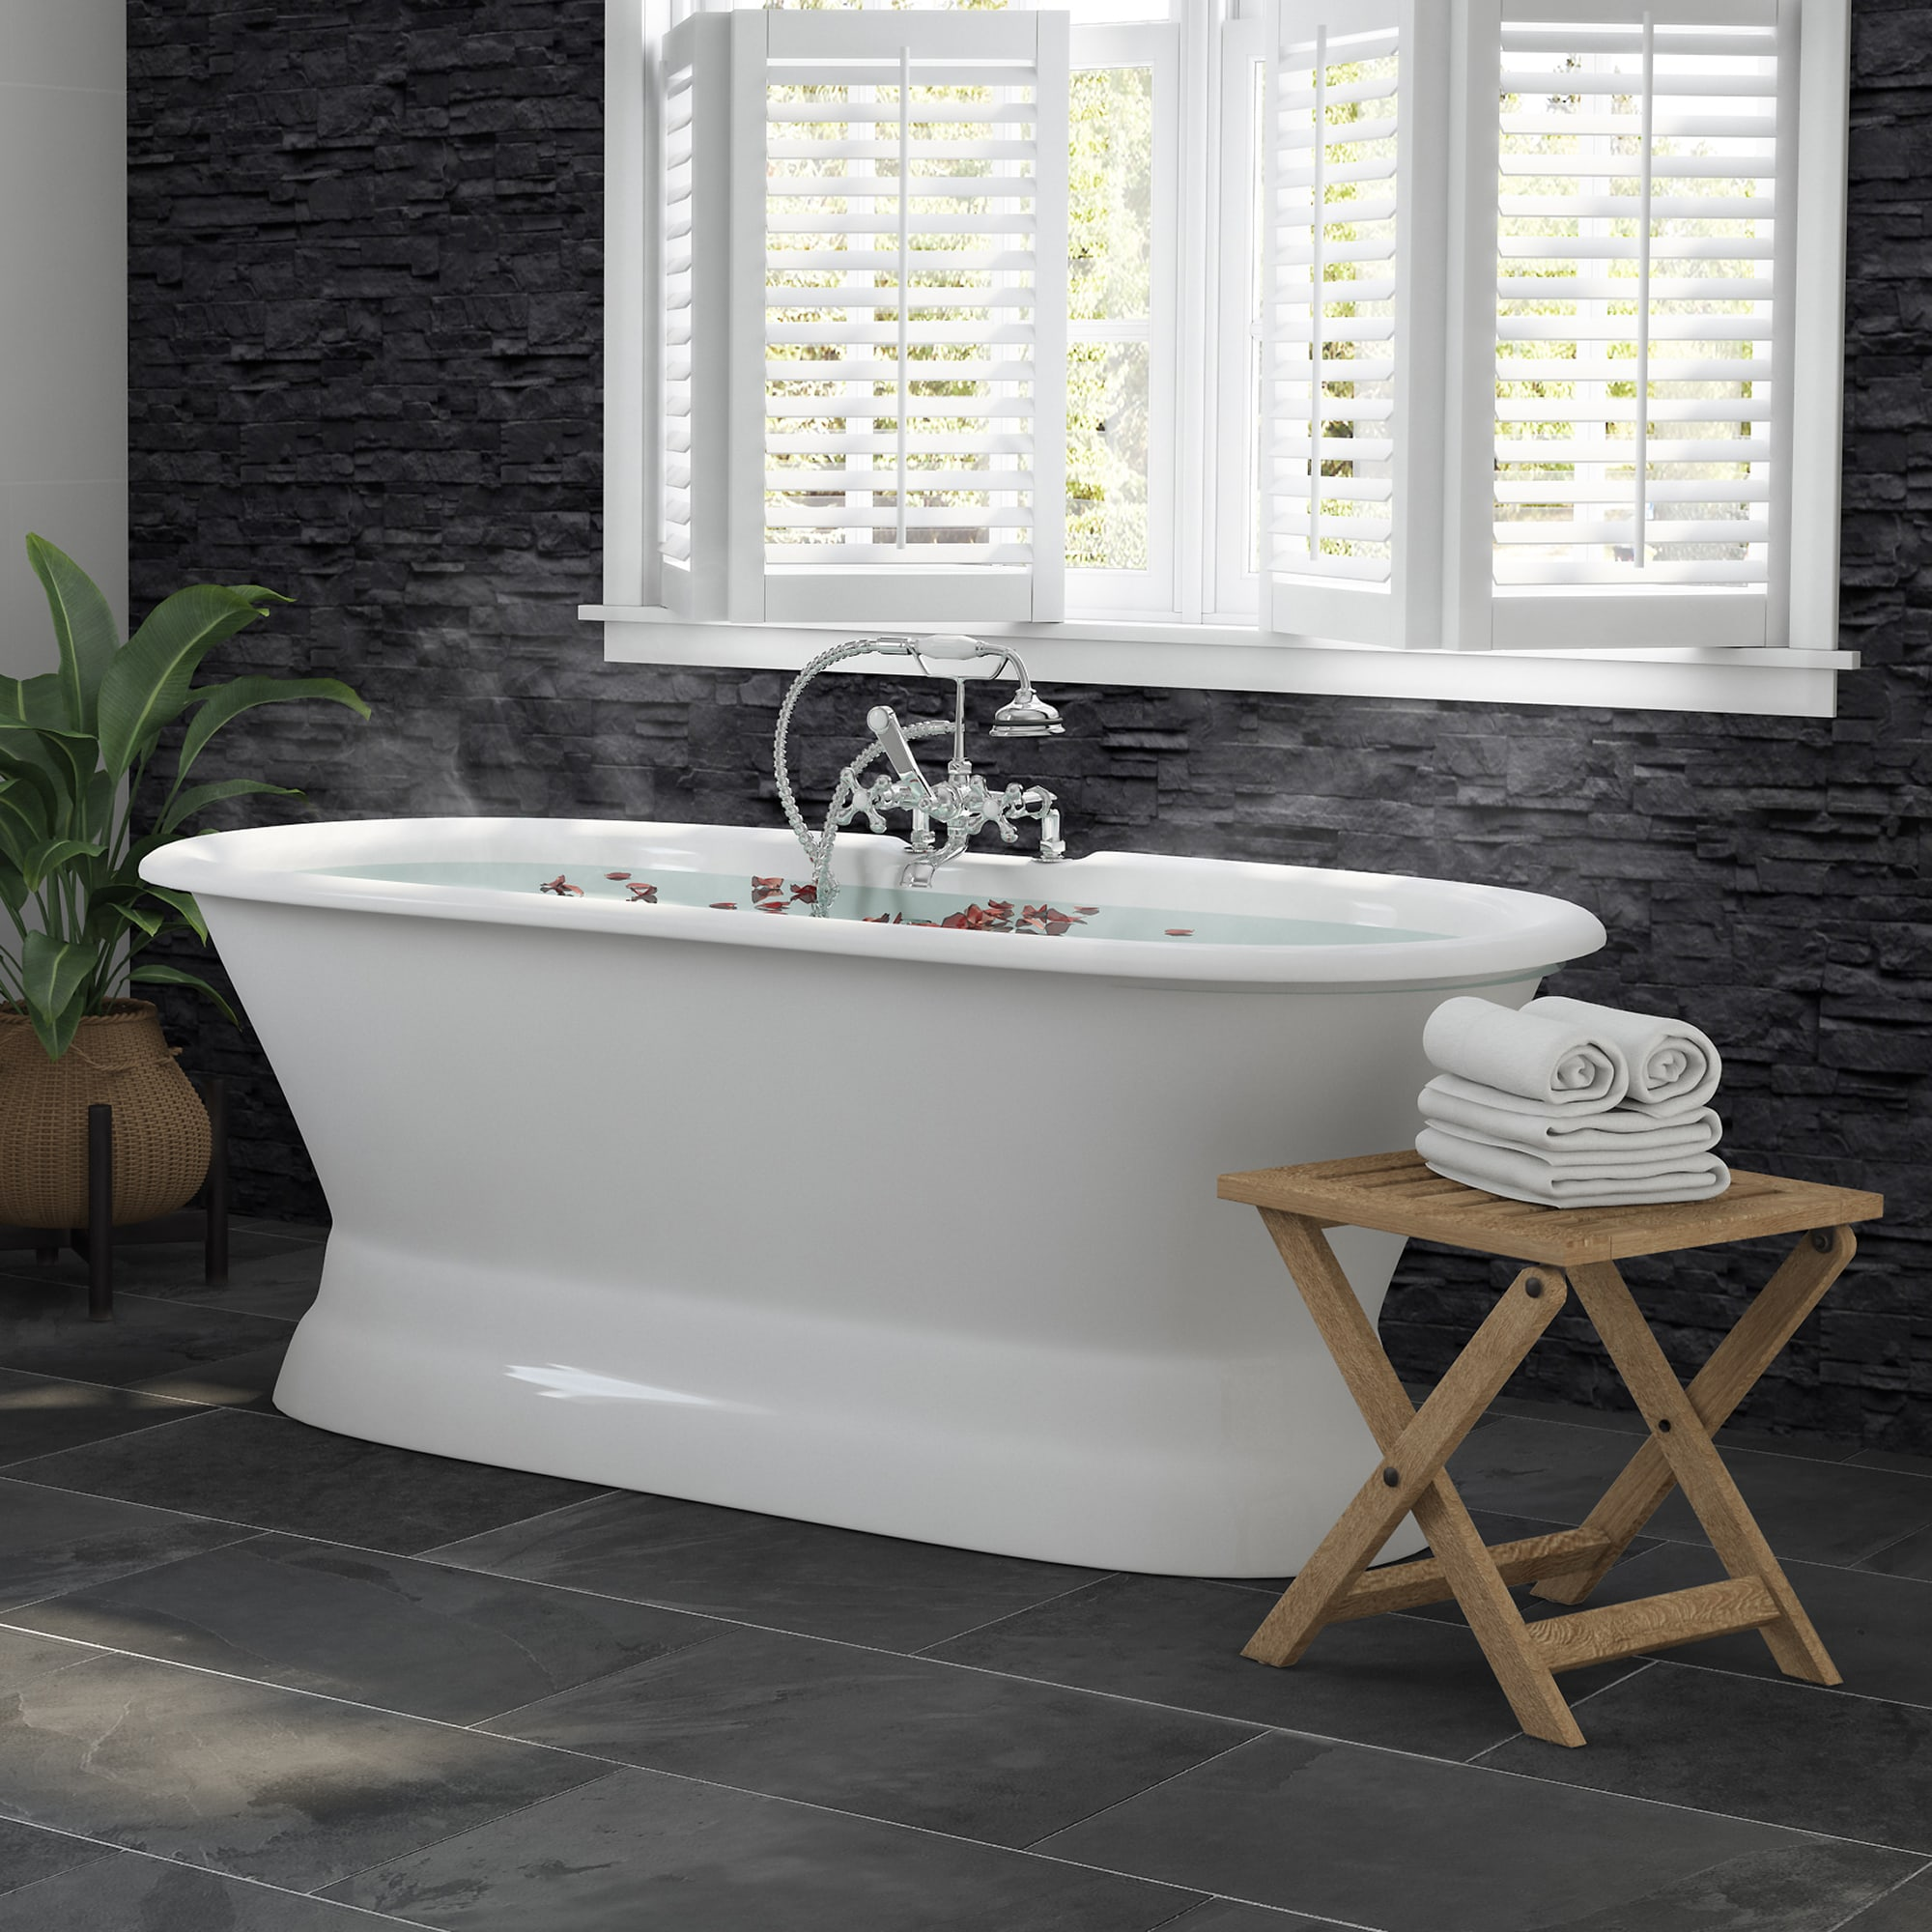 """66"""" Cast Iron Dual Ended Pedestal Bathtub with Deckmount faucet drillings Complete plumbing package in Polished Chrome"""